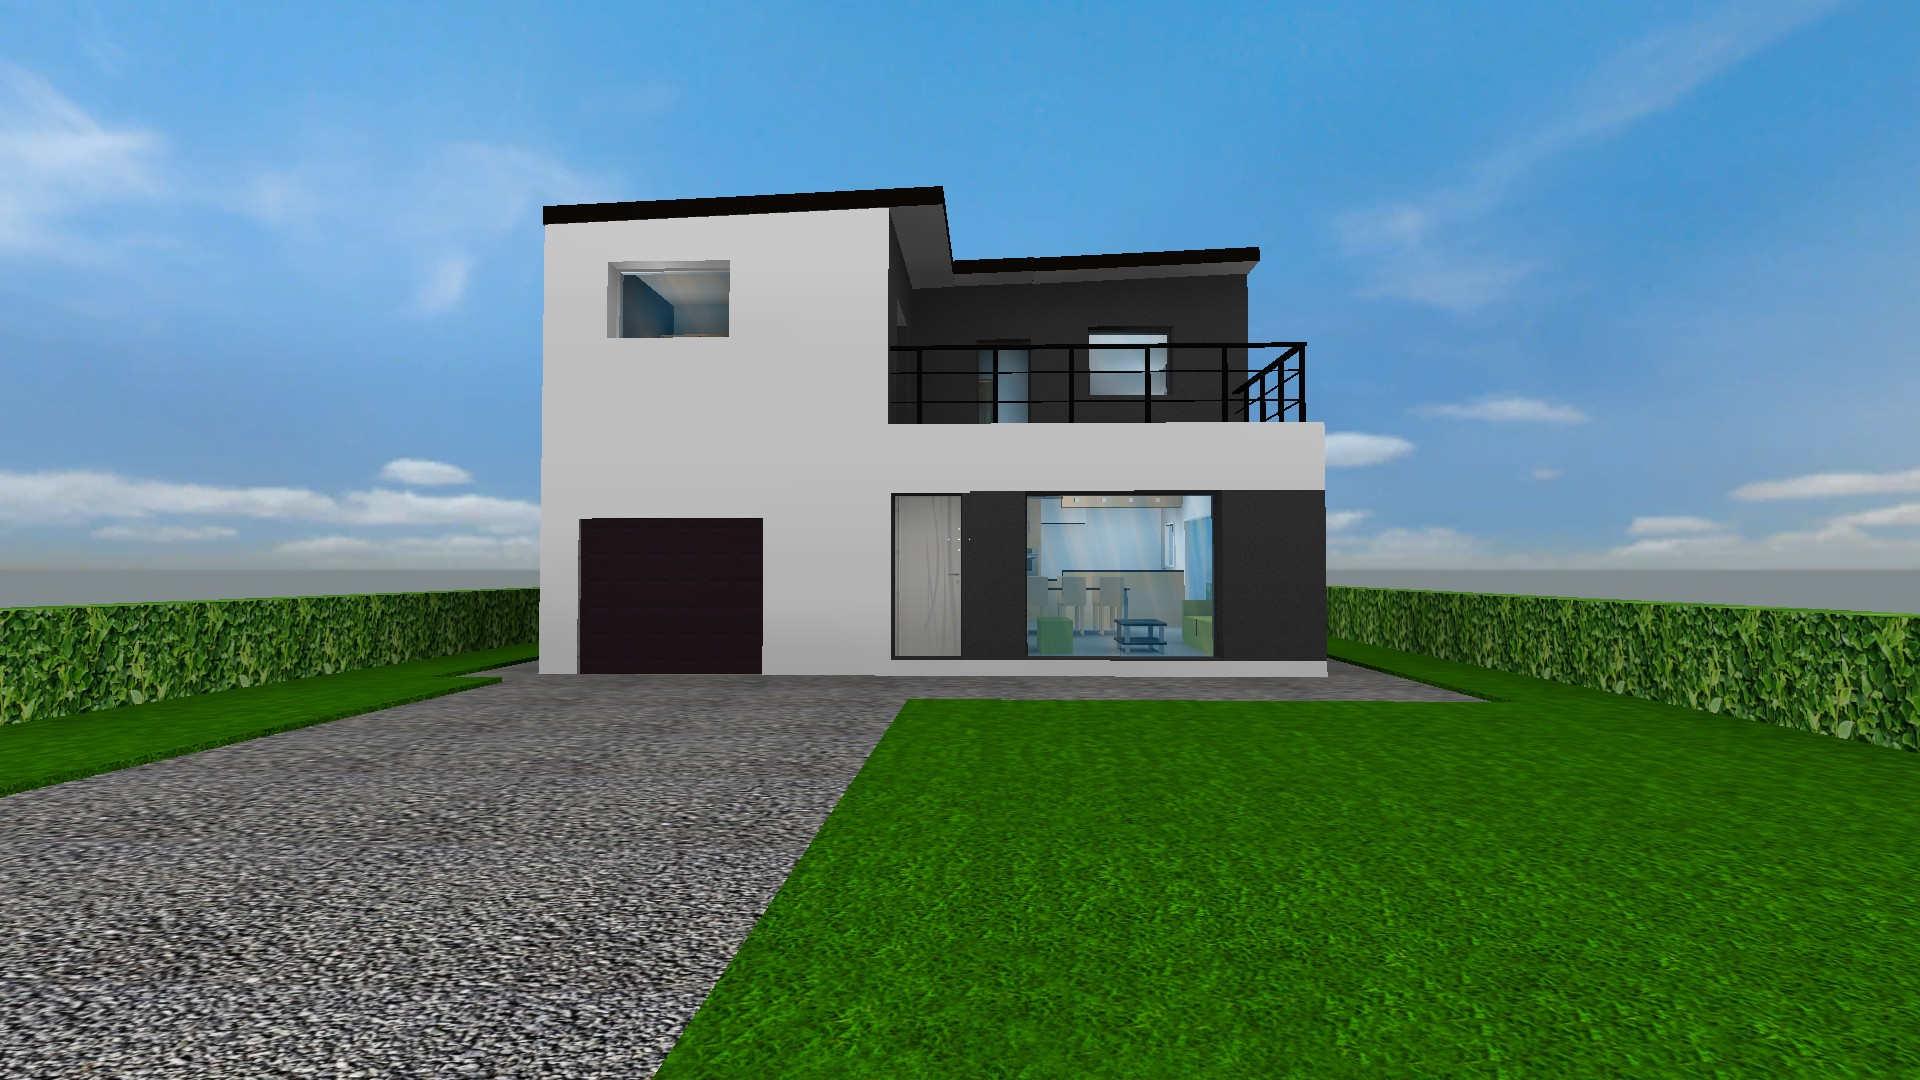 Perfect Home Model Using HL Source. Some Views Of A House Construction Project  Using Half Life Source Engine I Realized.